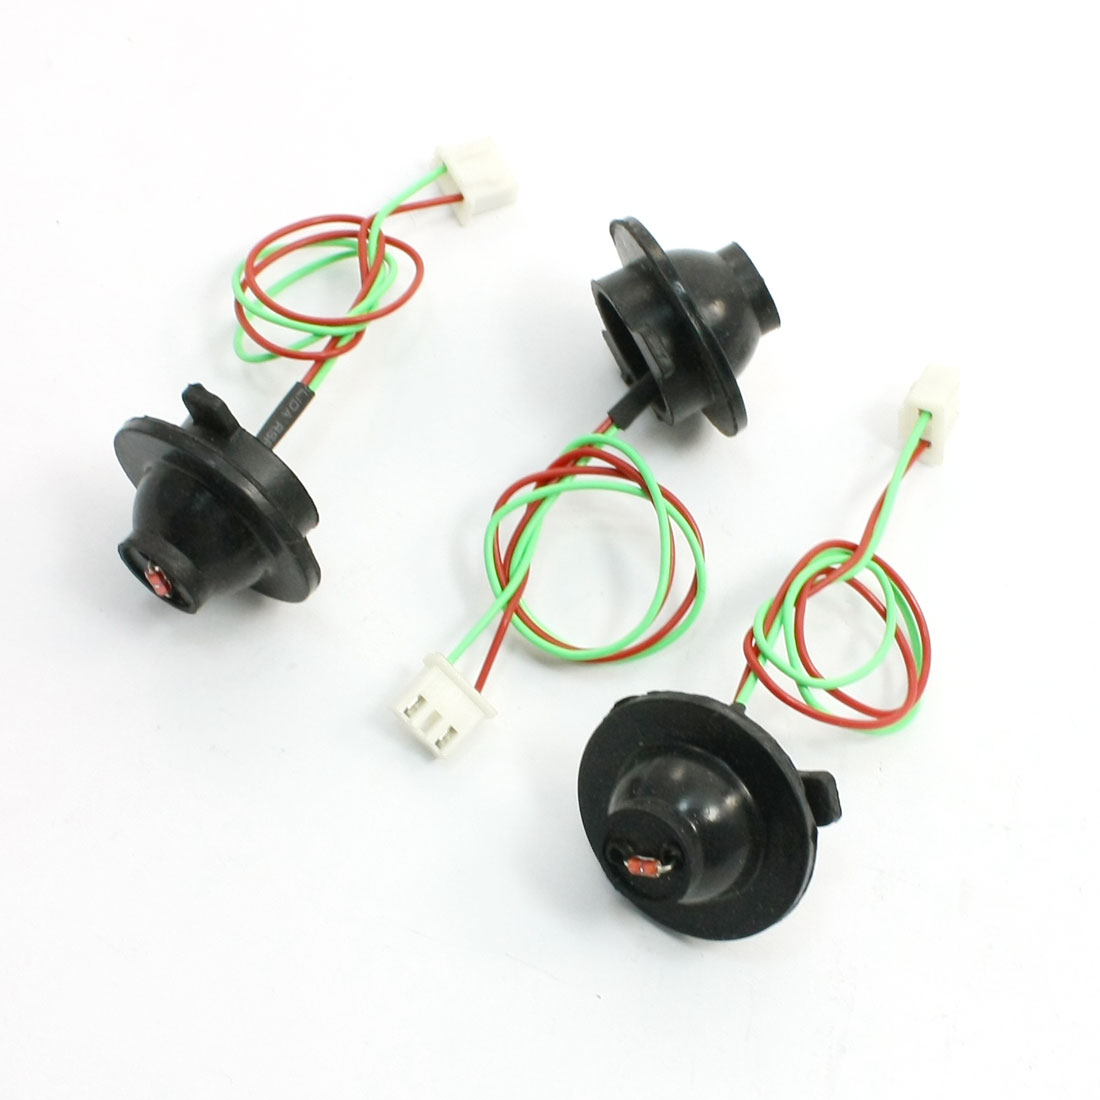 Replacing 2 Pole Induction Cooker Thermistors Temperature Sensor 3 Pcs